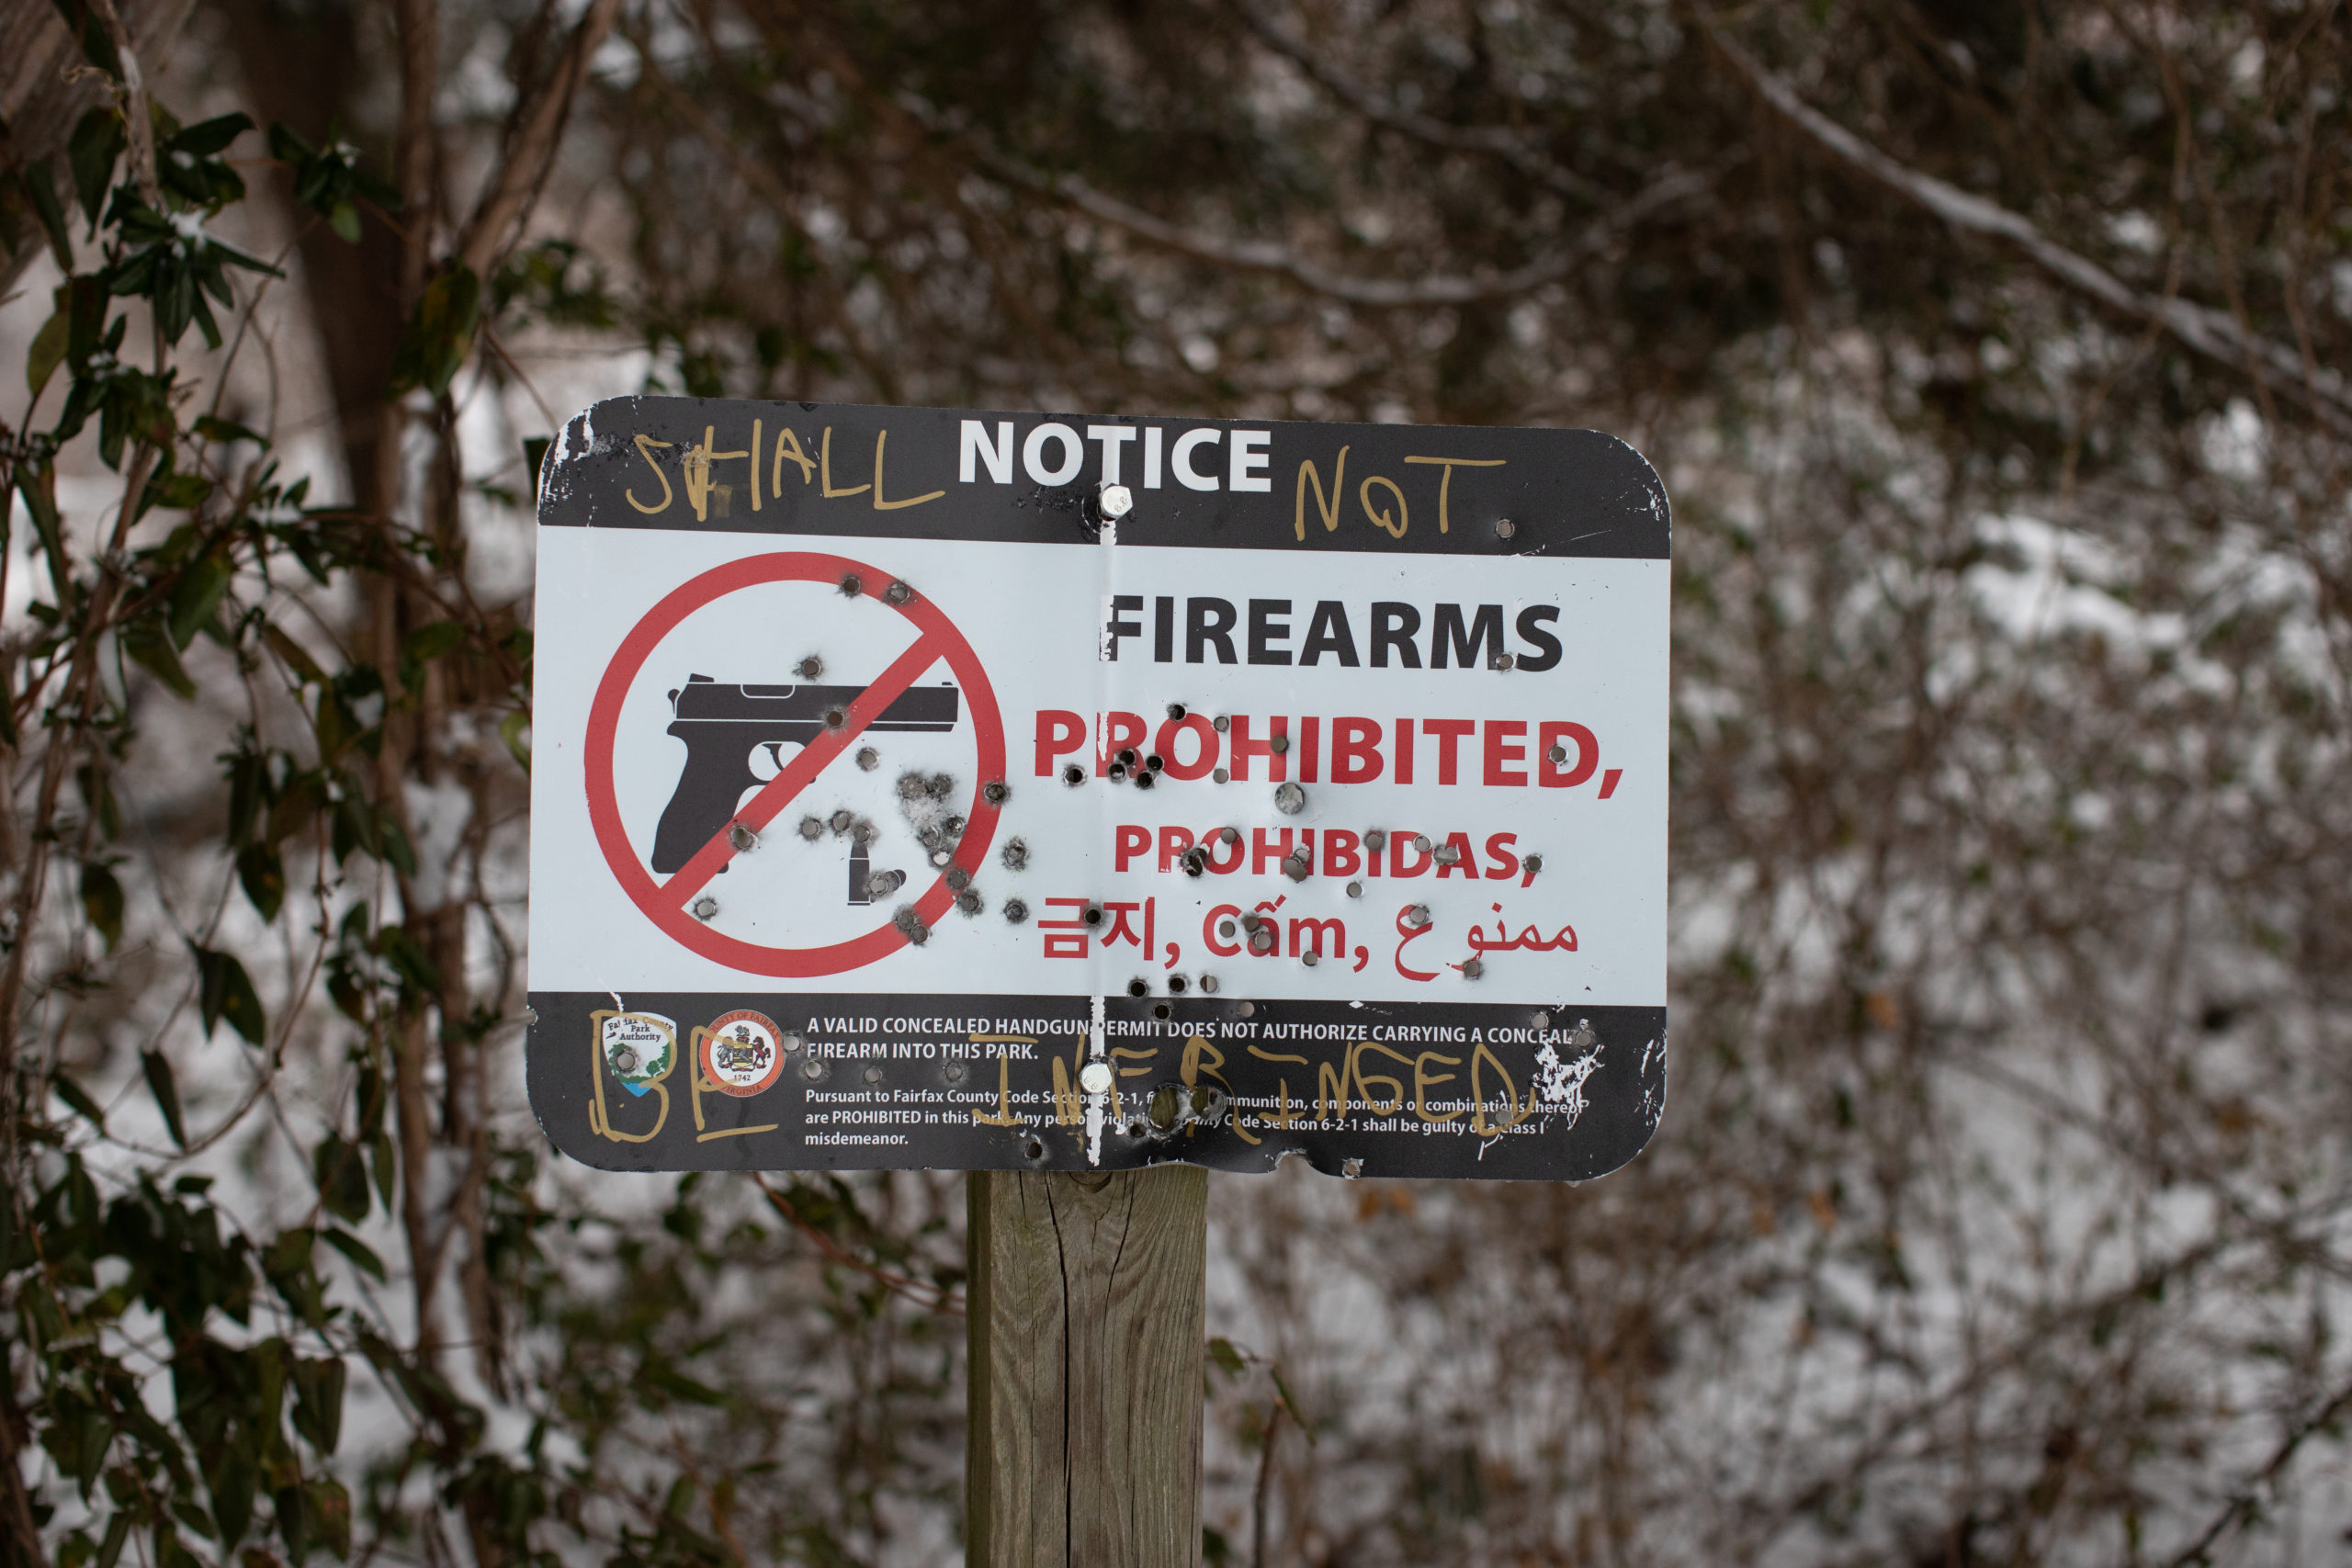 A sign prohibiting the possession of firearms at Bren Mar Park in Alexandria, Virginia, was stolen, shot and returned by members of the Virginia Gray Ranks as a form of protest against the ordinance, on Feb. 1, 2021. (Kaylee Greenlee - Daily Caller News Foundation)